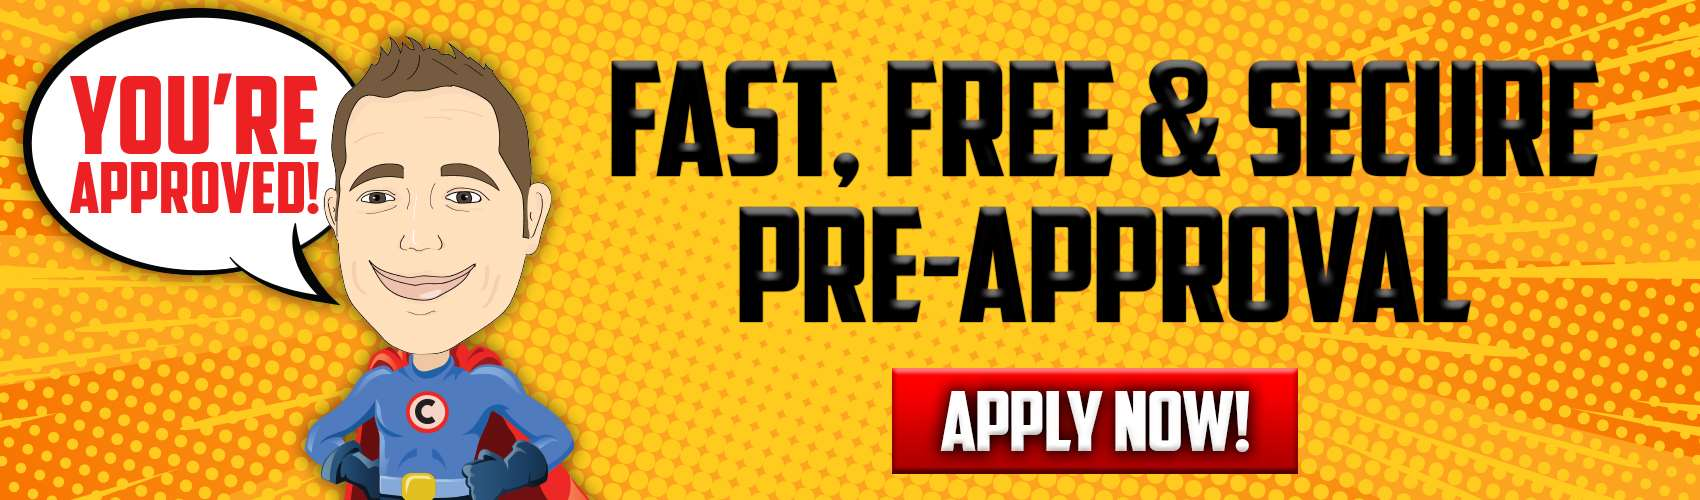 Get Pre-Approved Fast